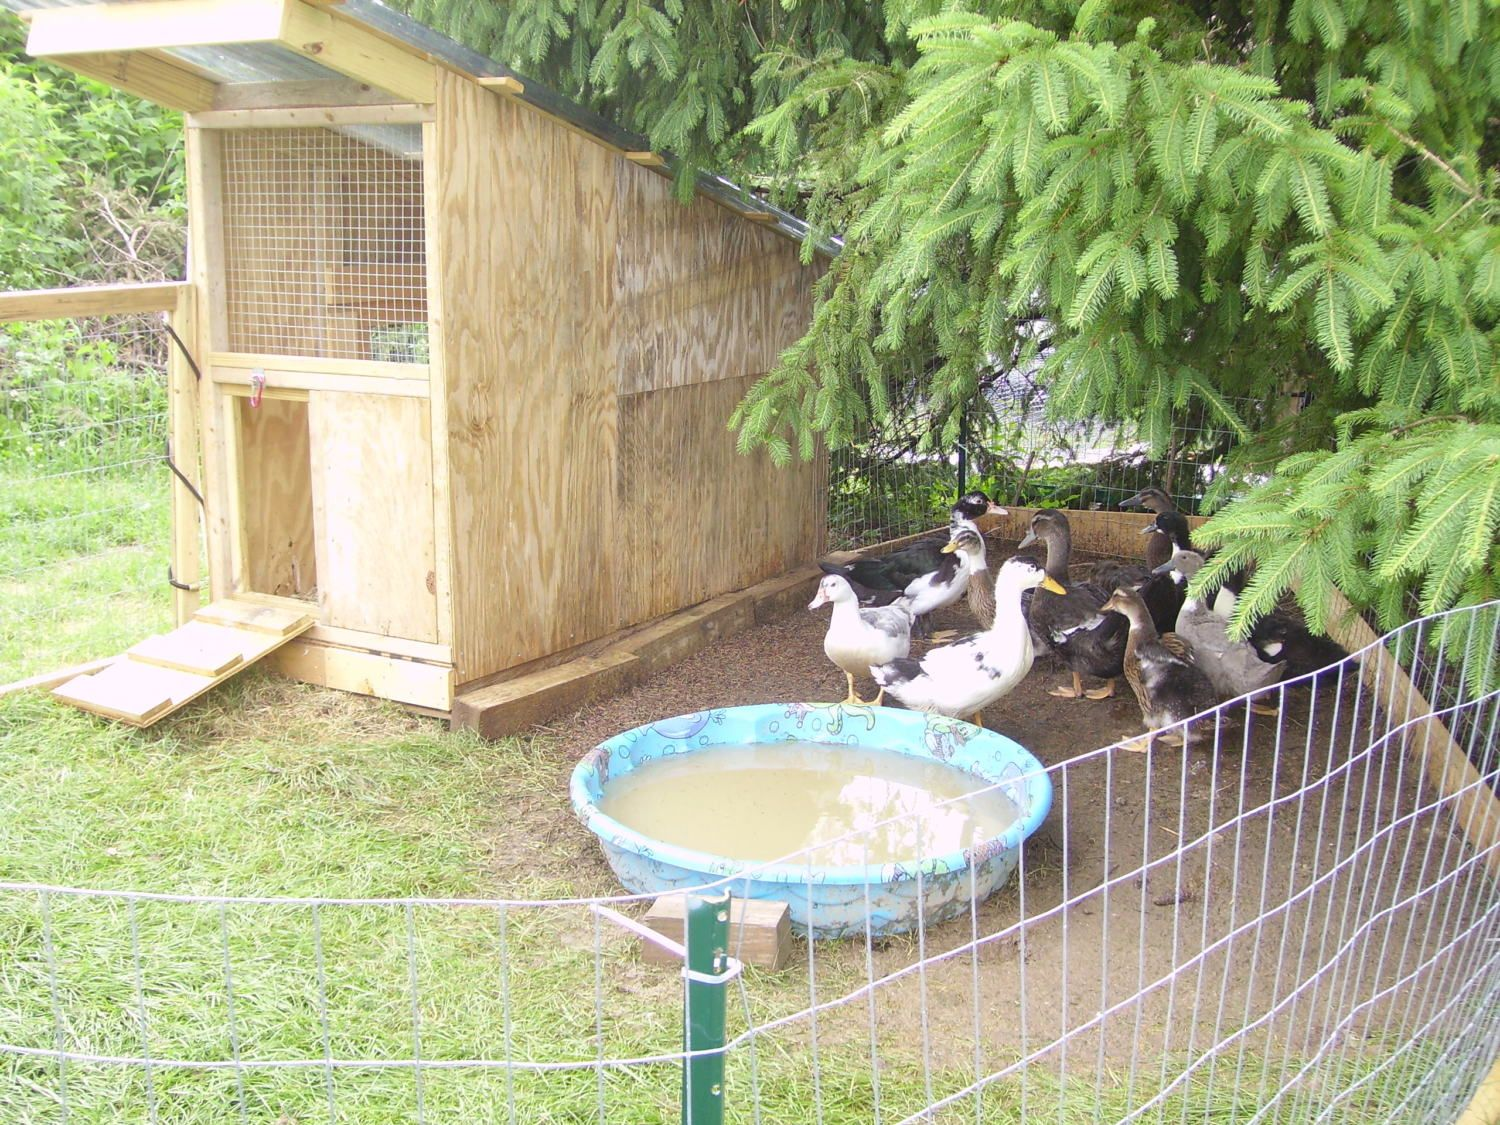 Scrap duck hut backyard chickens community for Building a duck house shelter